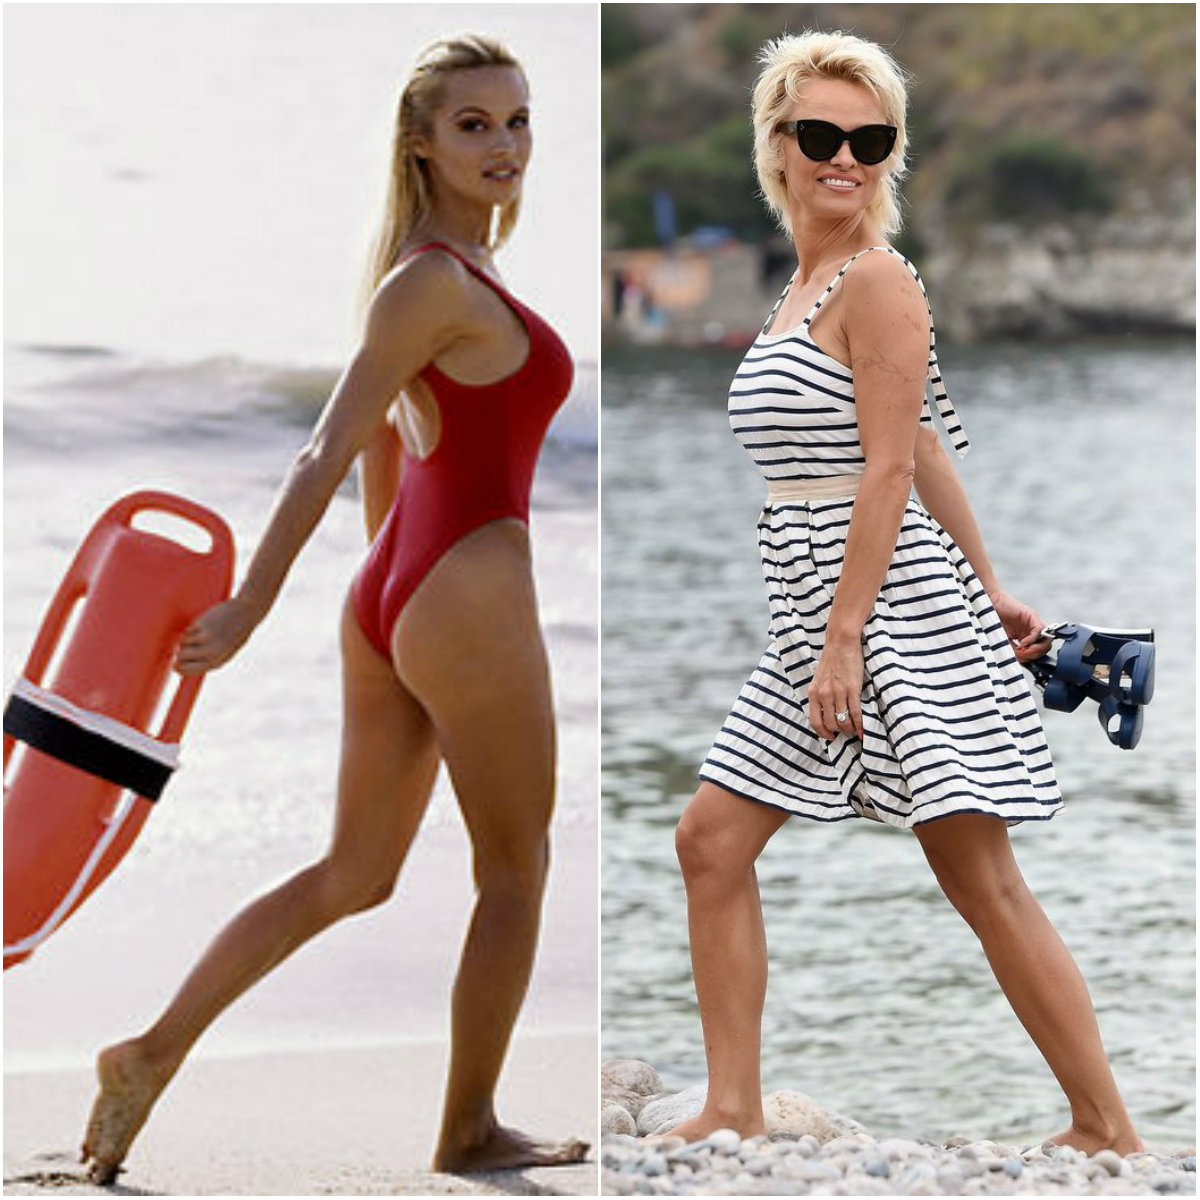 Pamela Anderson on the beach then and now